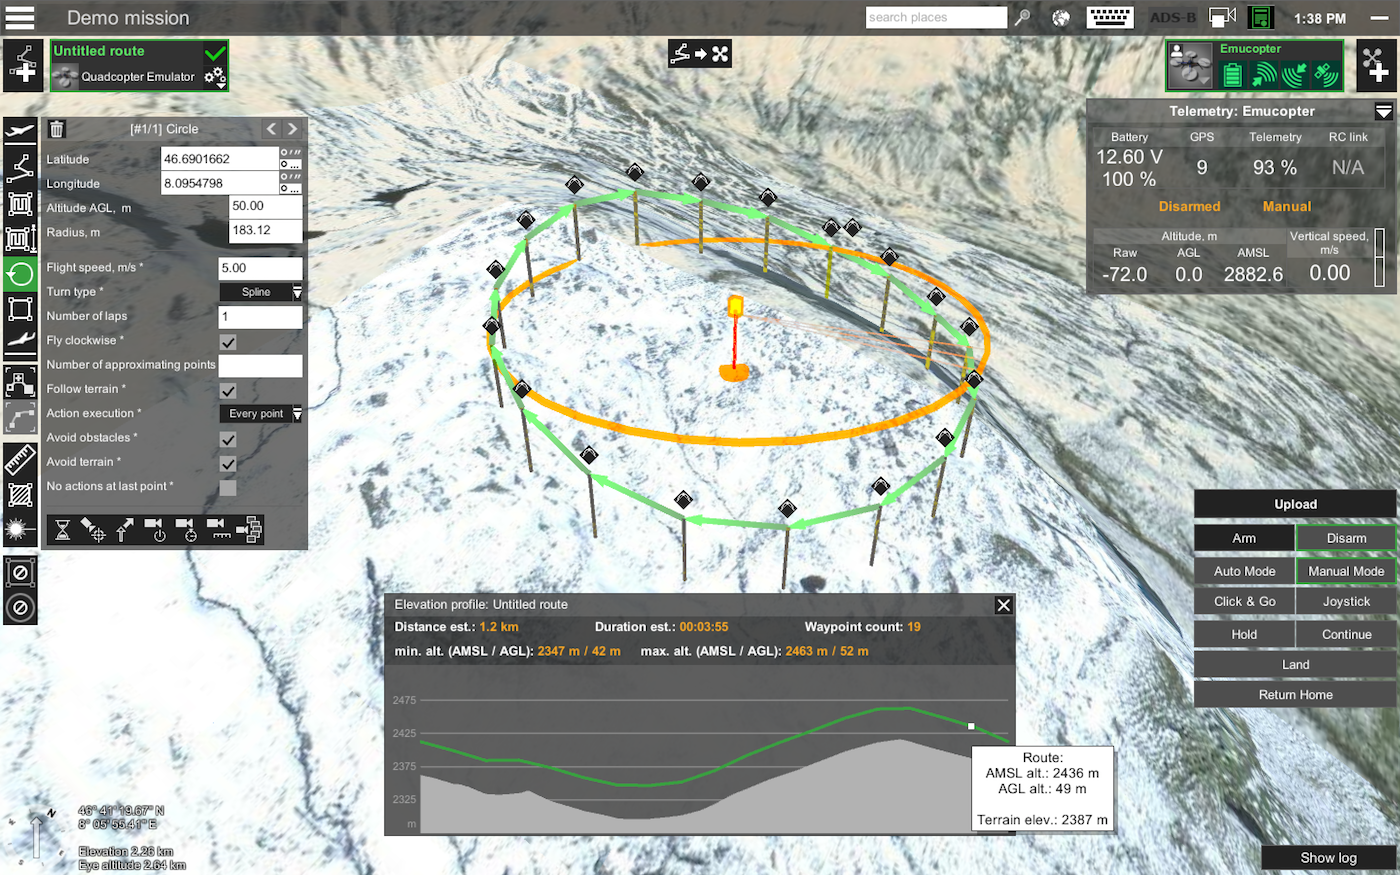 Elevation Plan Profile : Mission planner drone control ugcs